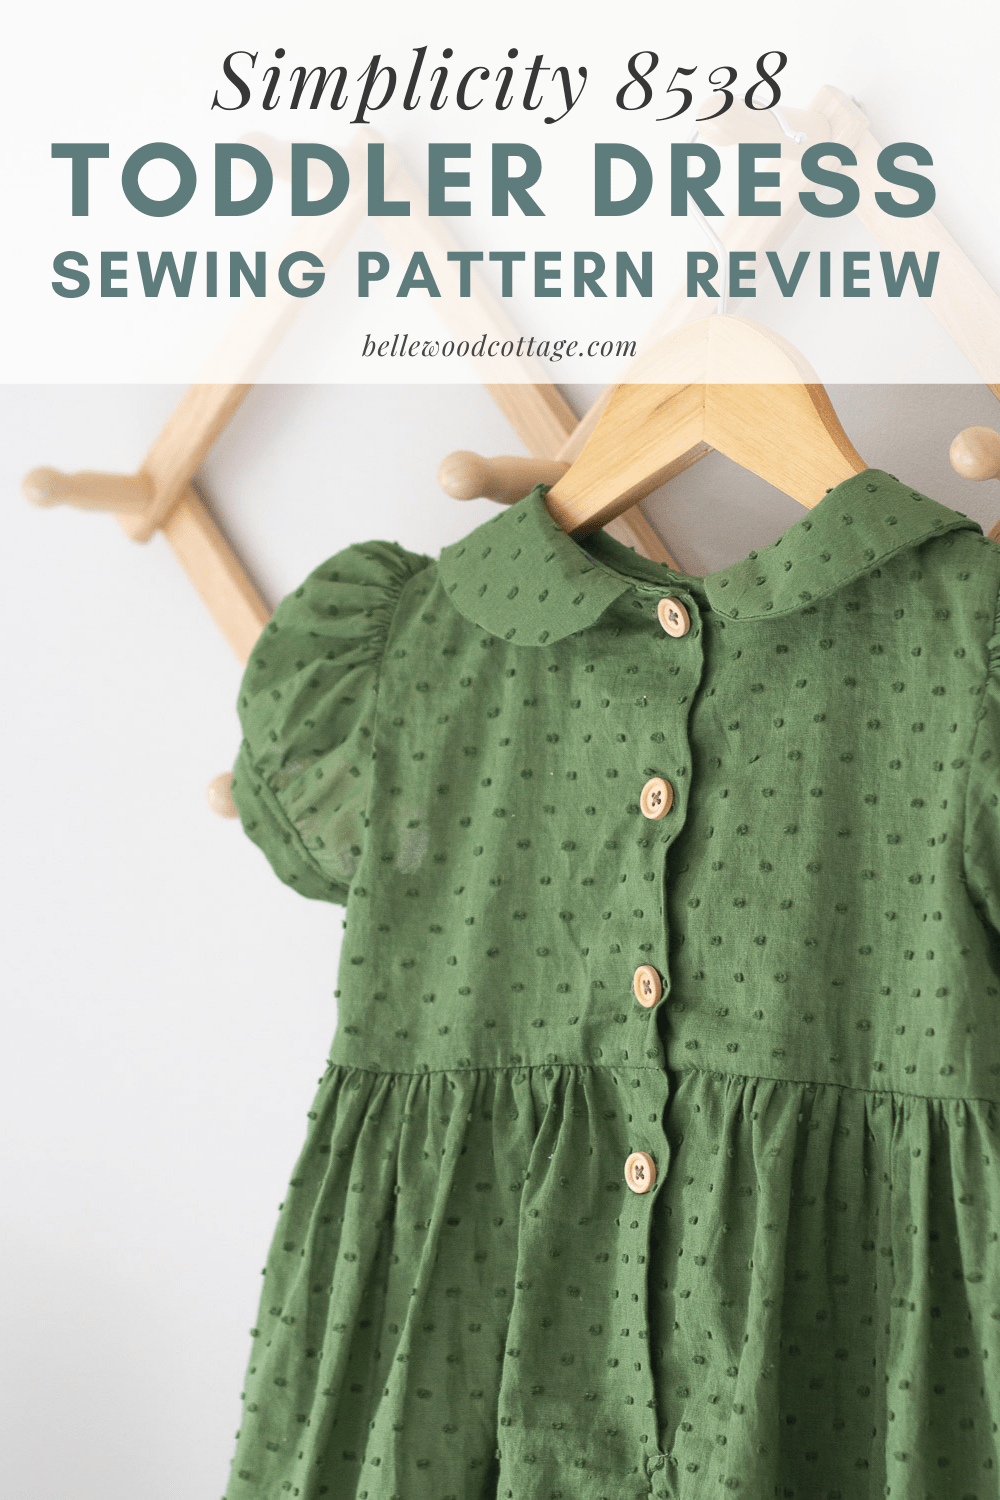 A green handmade toddler dress with wooden buttons and a Peter Pan collar hanging on a wooden hanger.